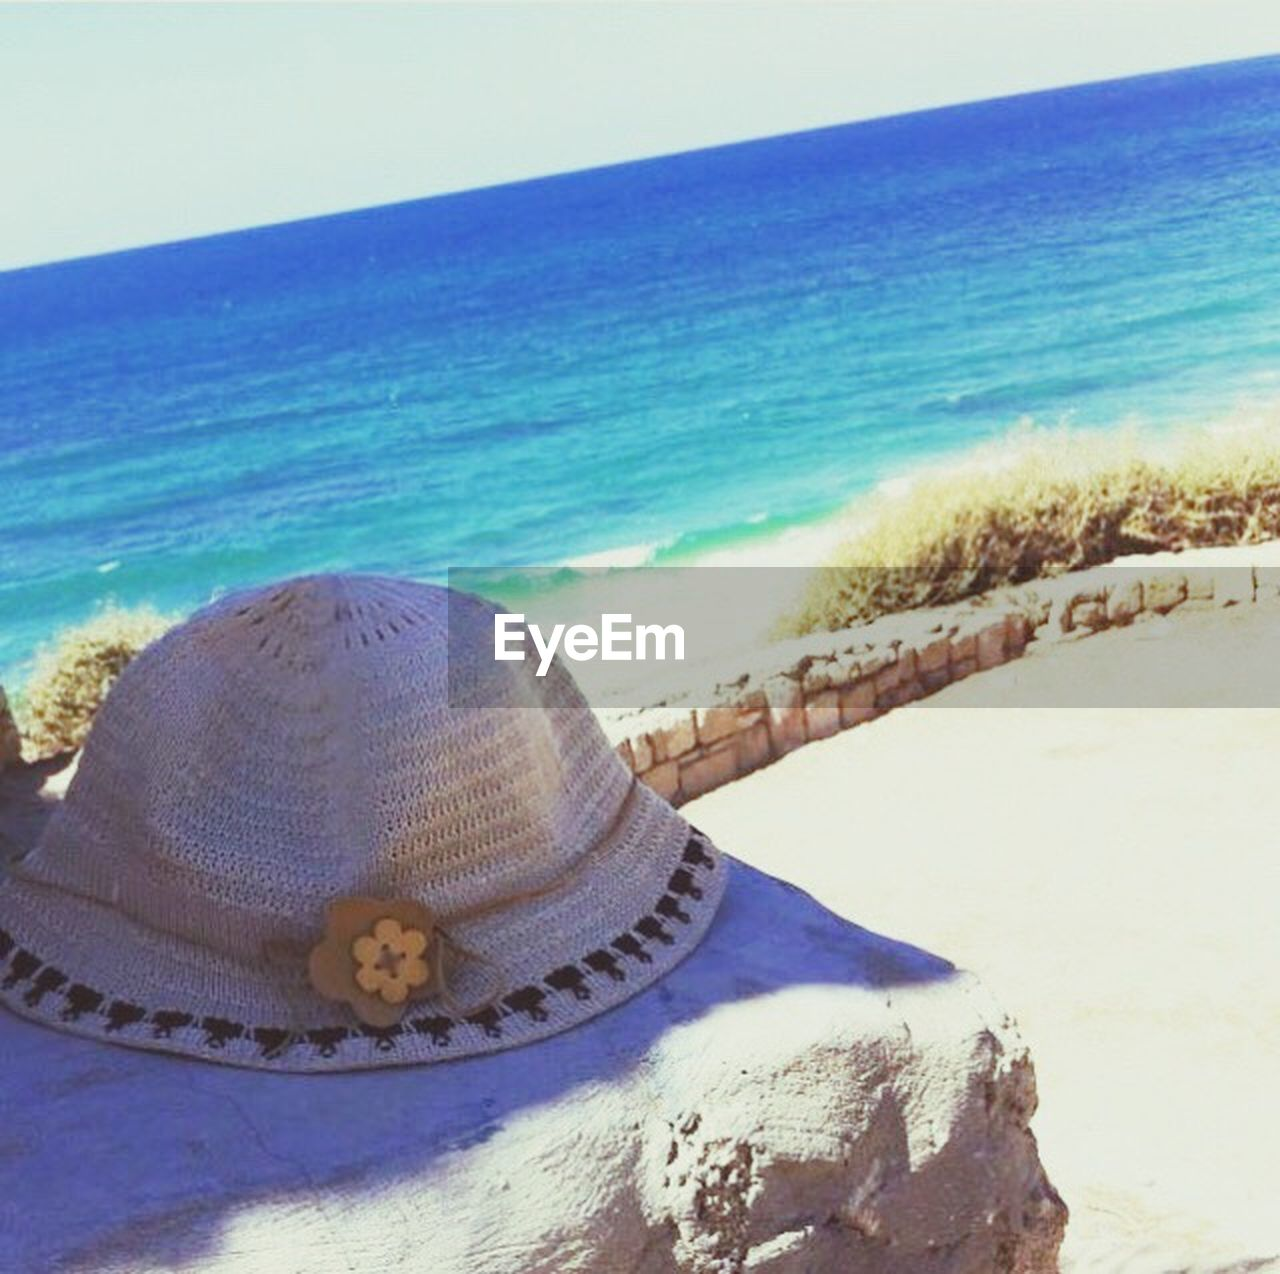 beach, sand, sea, water, shore, tranquil scene, beauty in nature, nature, horizon over water, day, vacations, scenics, sunlight, summer, outdoors, tranquility, no people, clear sky, sky